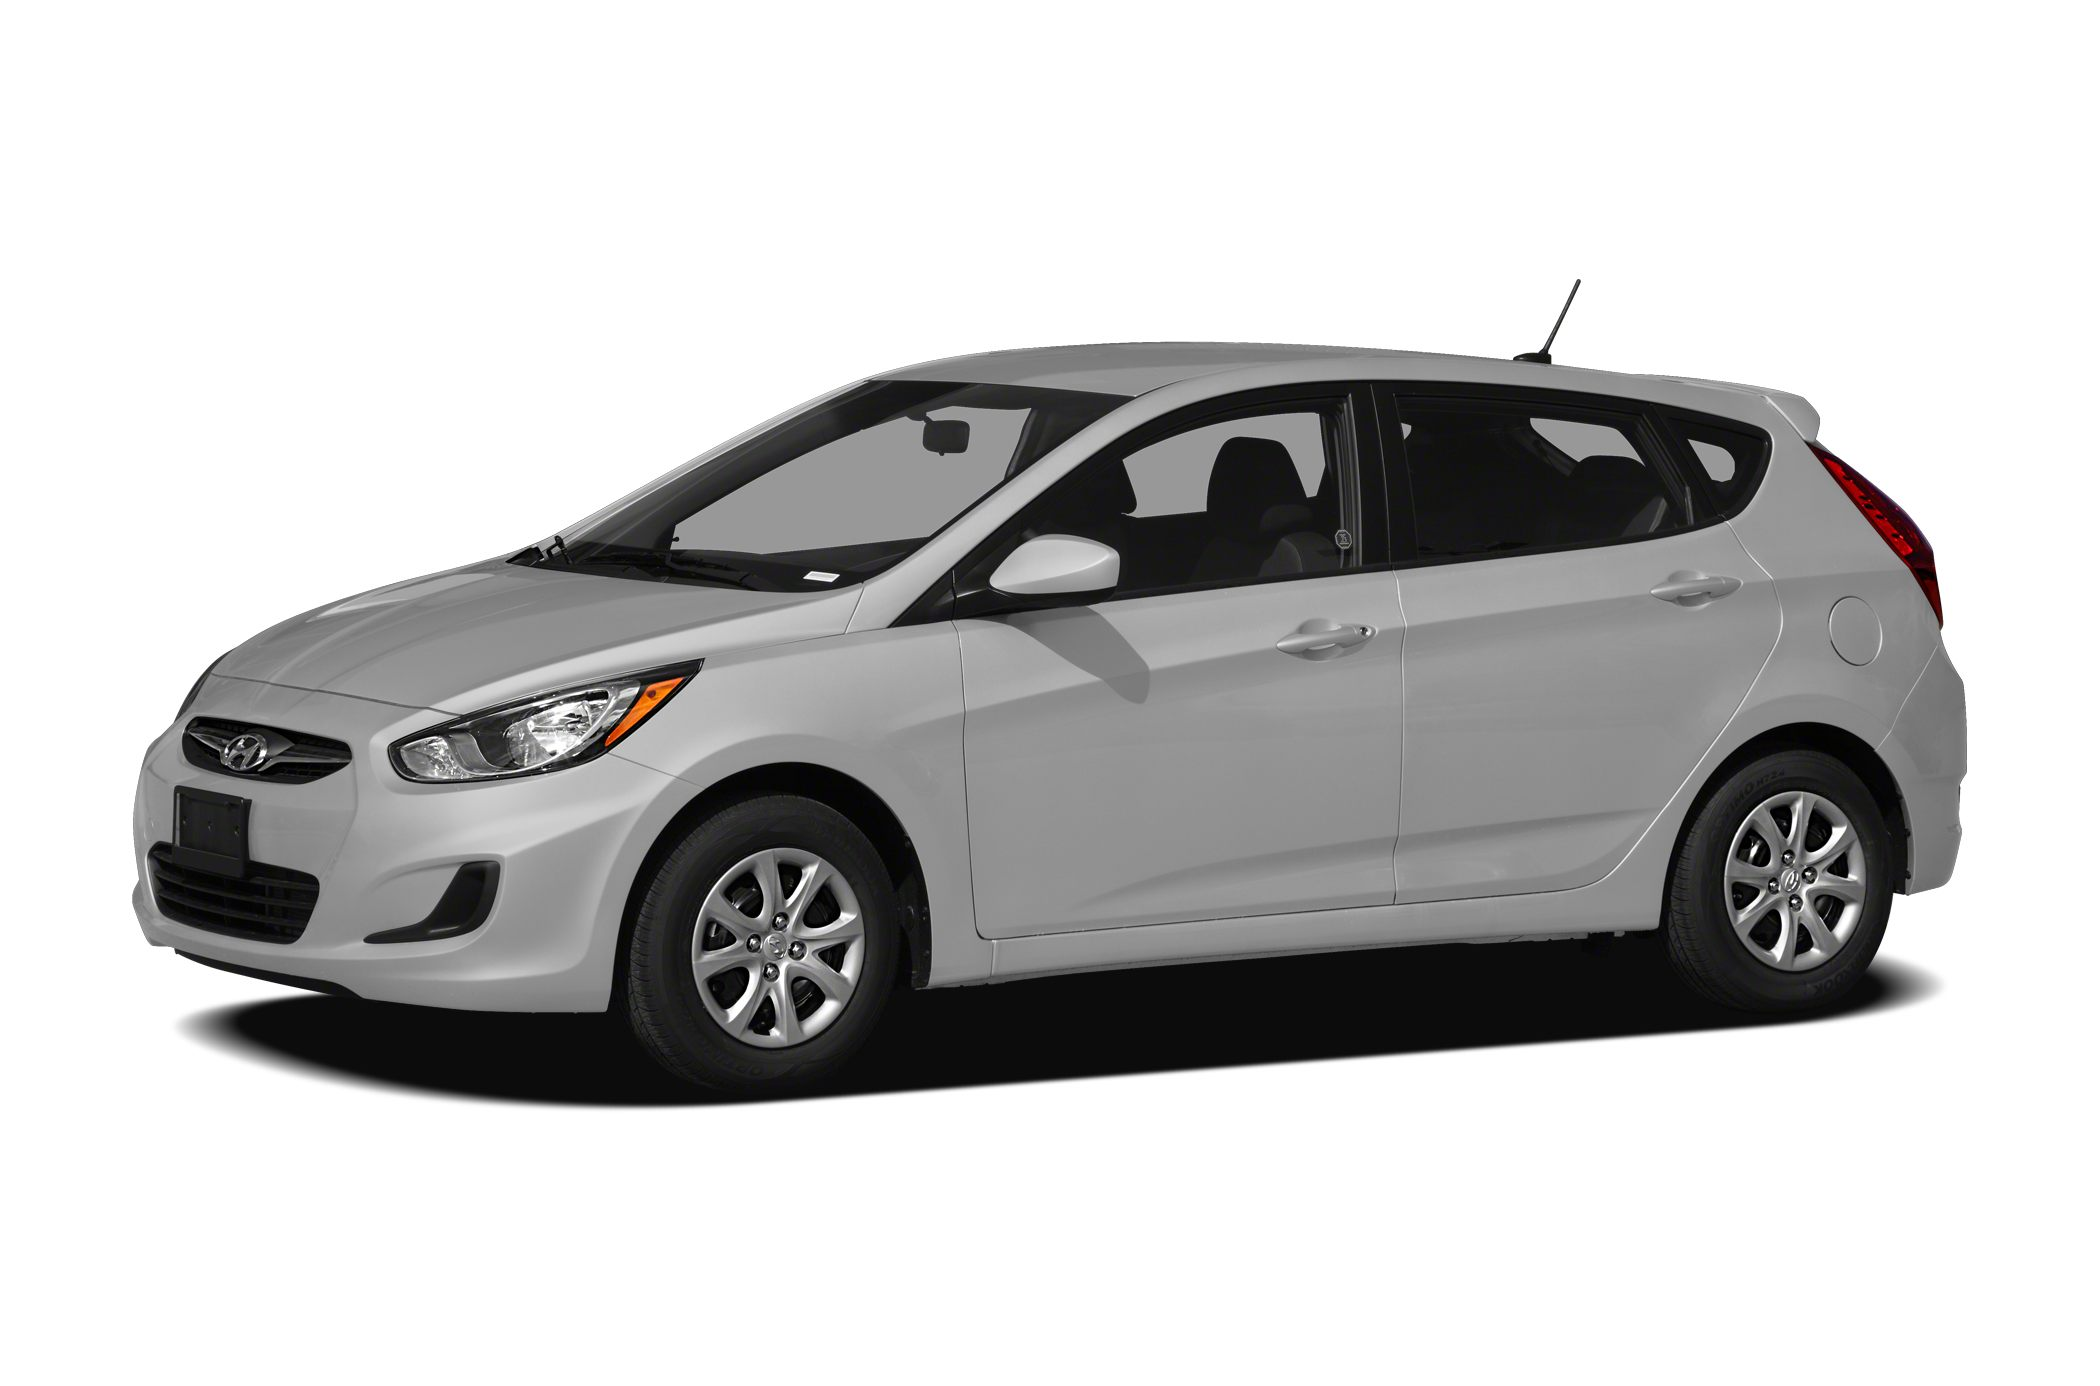 2012 Hyundai Accent SE Hatchback for sale in Muskegon for $0 with 28,755 miles